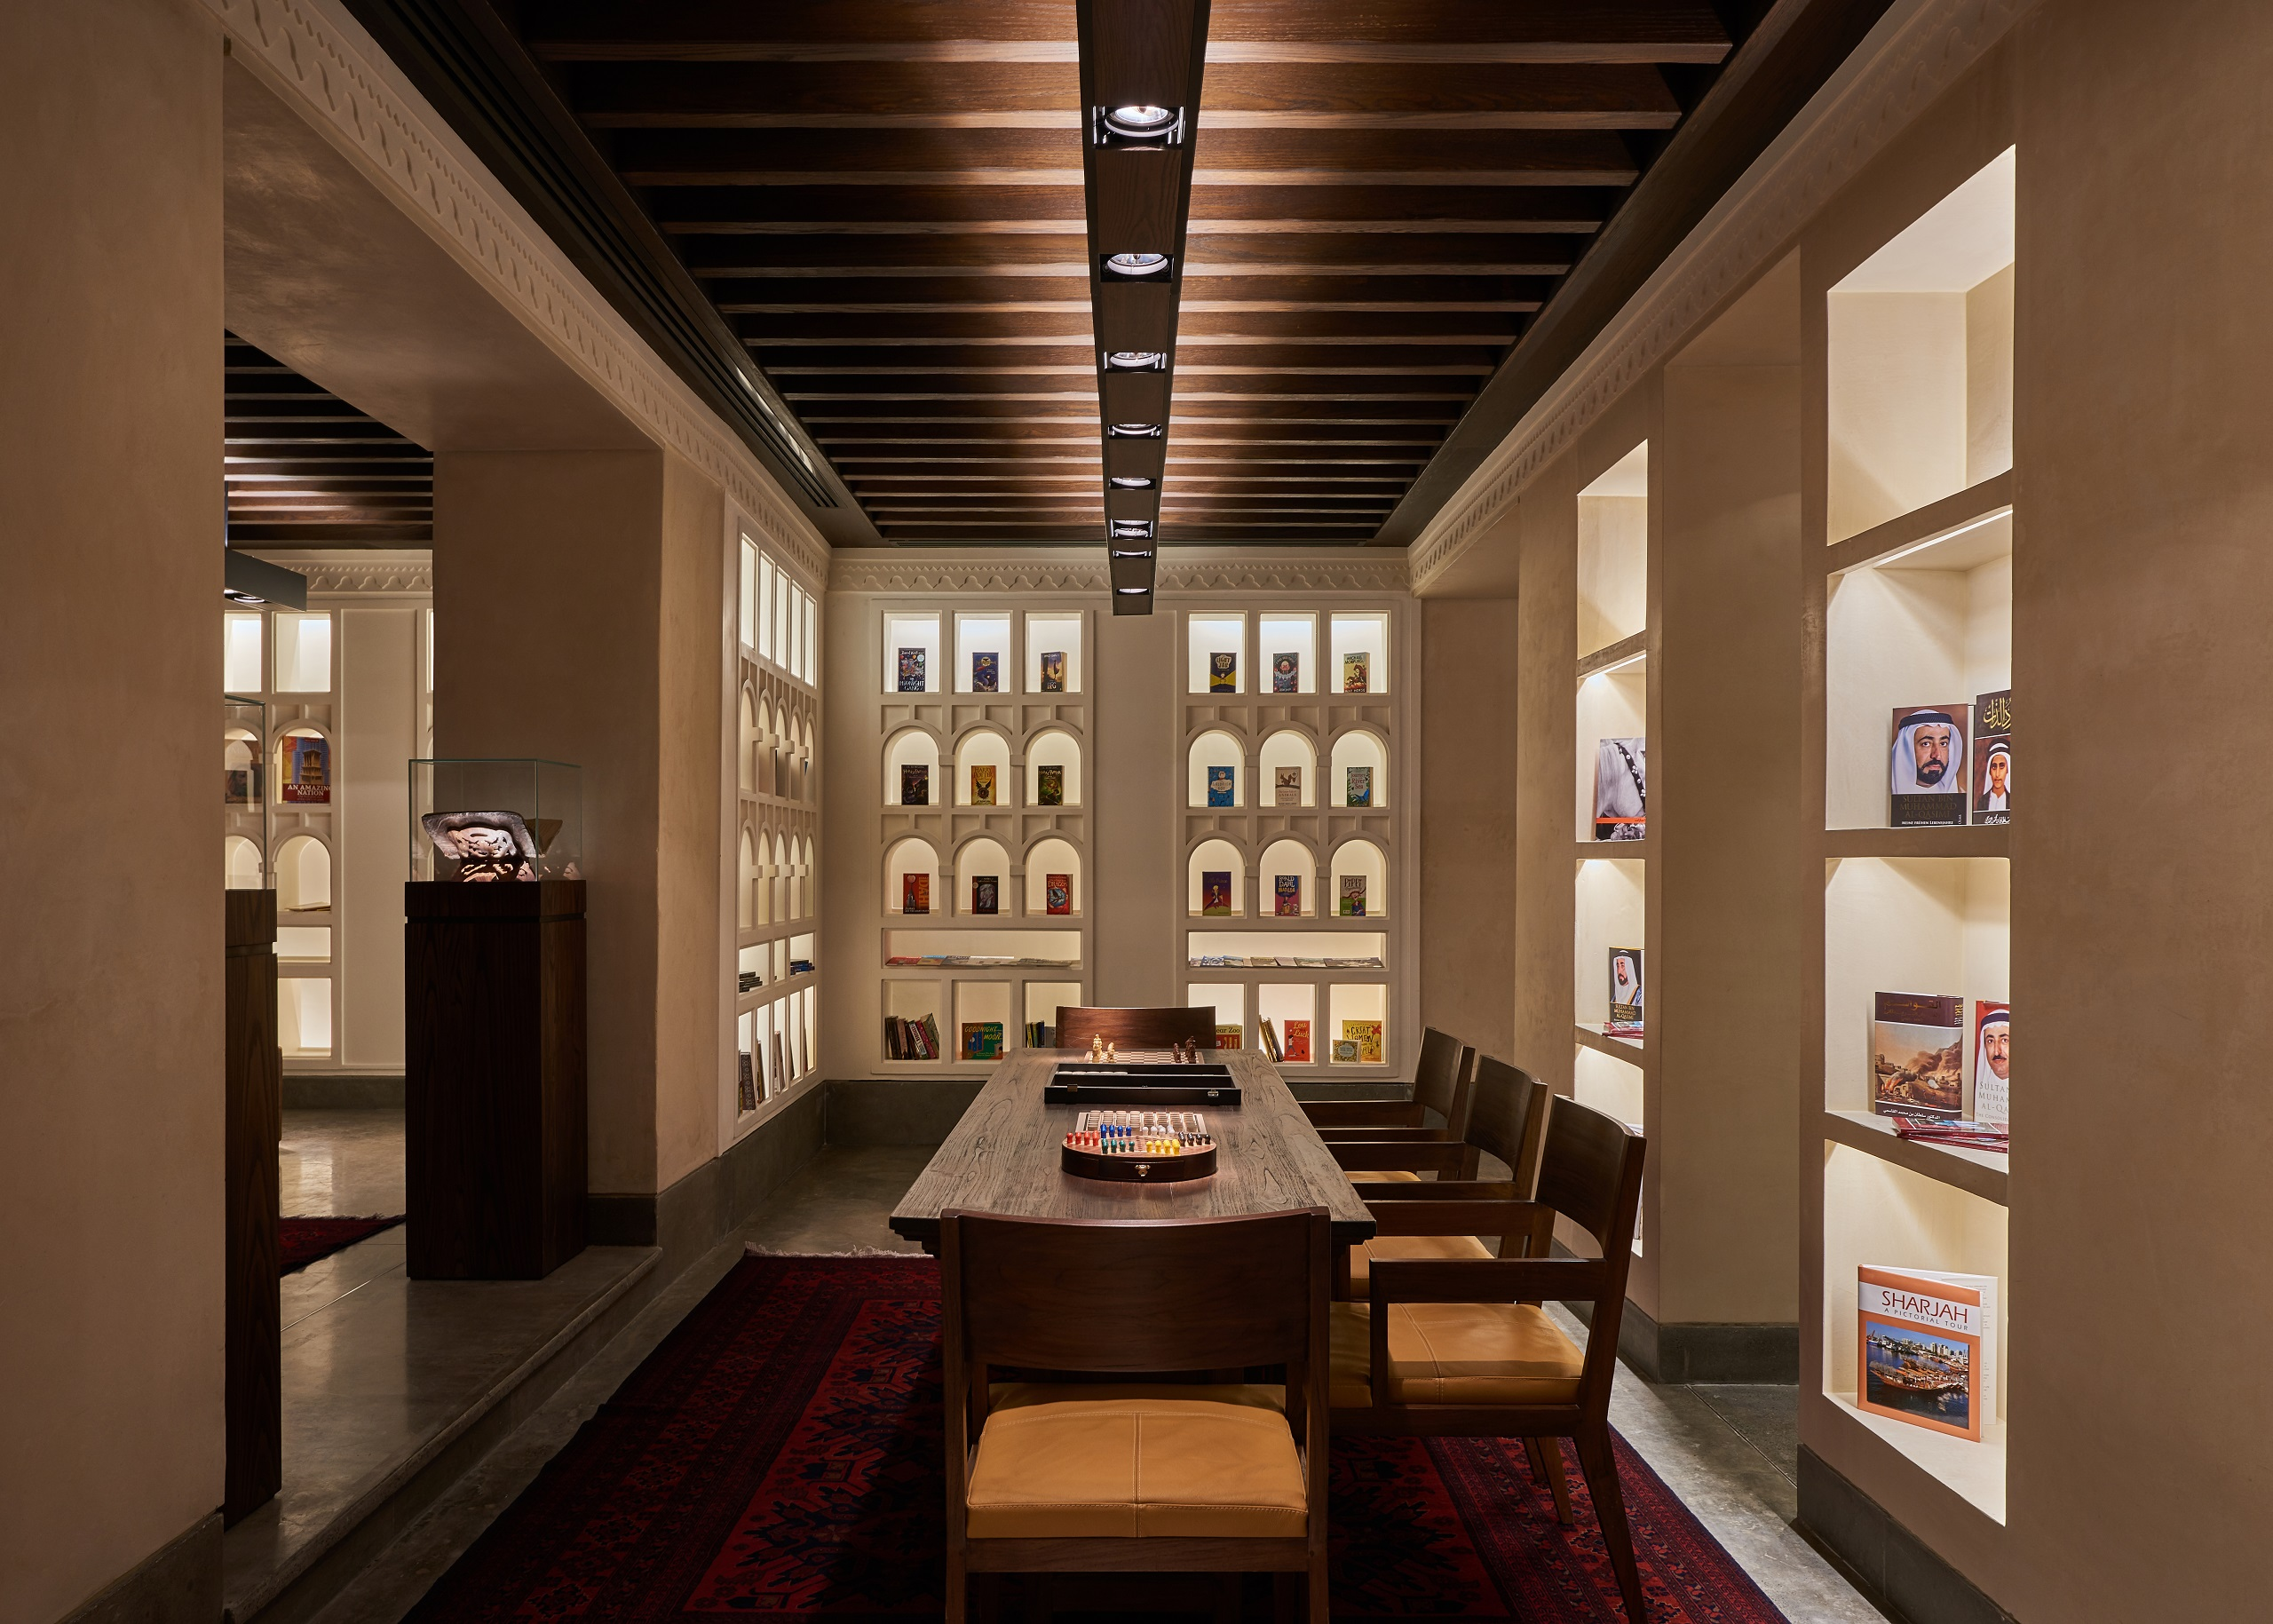 Al Bait Sharjah Recreating The Intimacy And Character Of